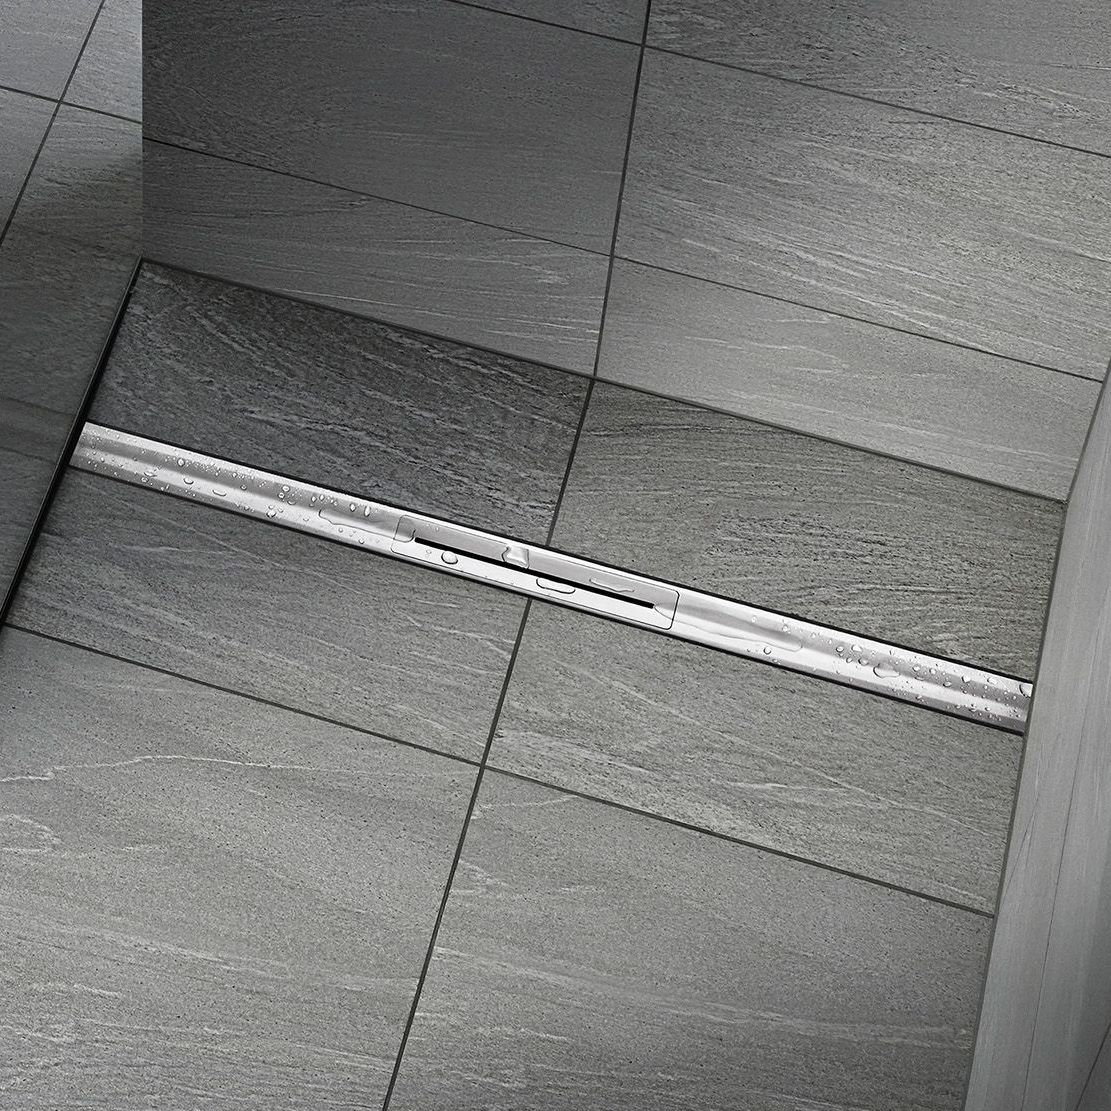 brushed stainless steel linear shower